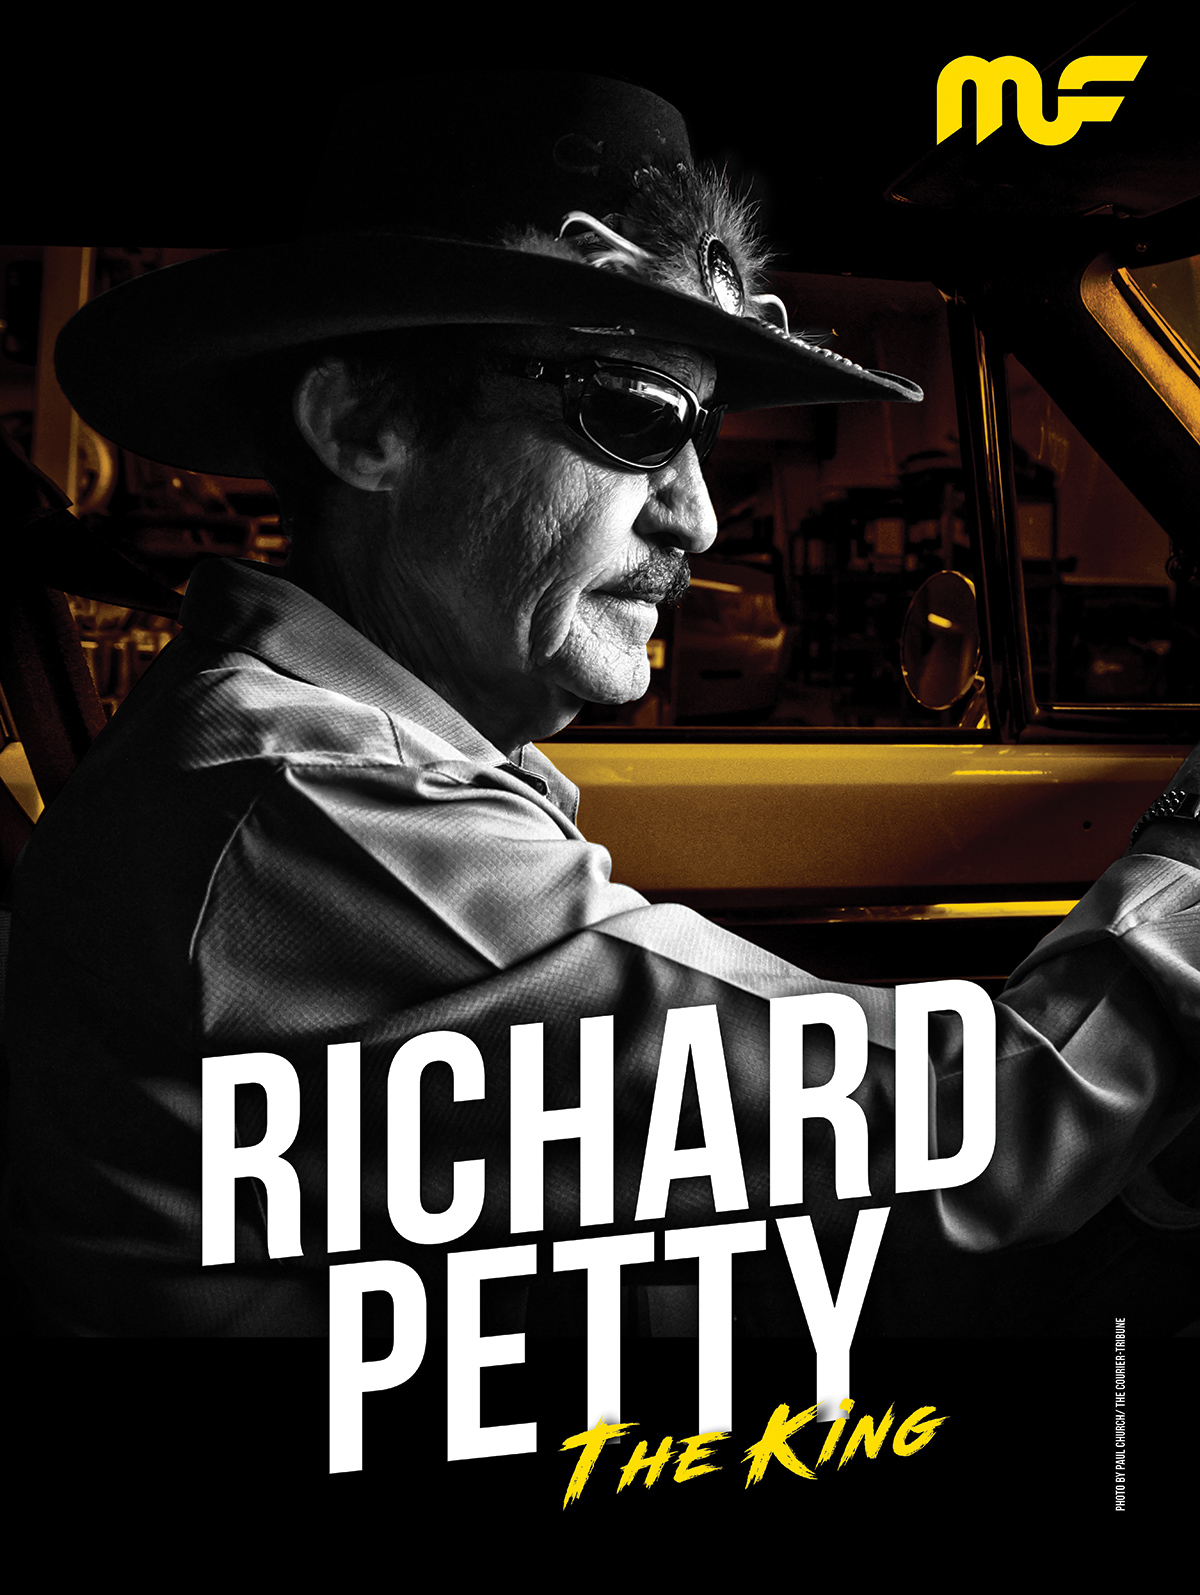 Richard_Petty.jpg